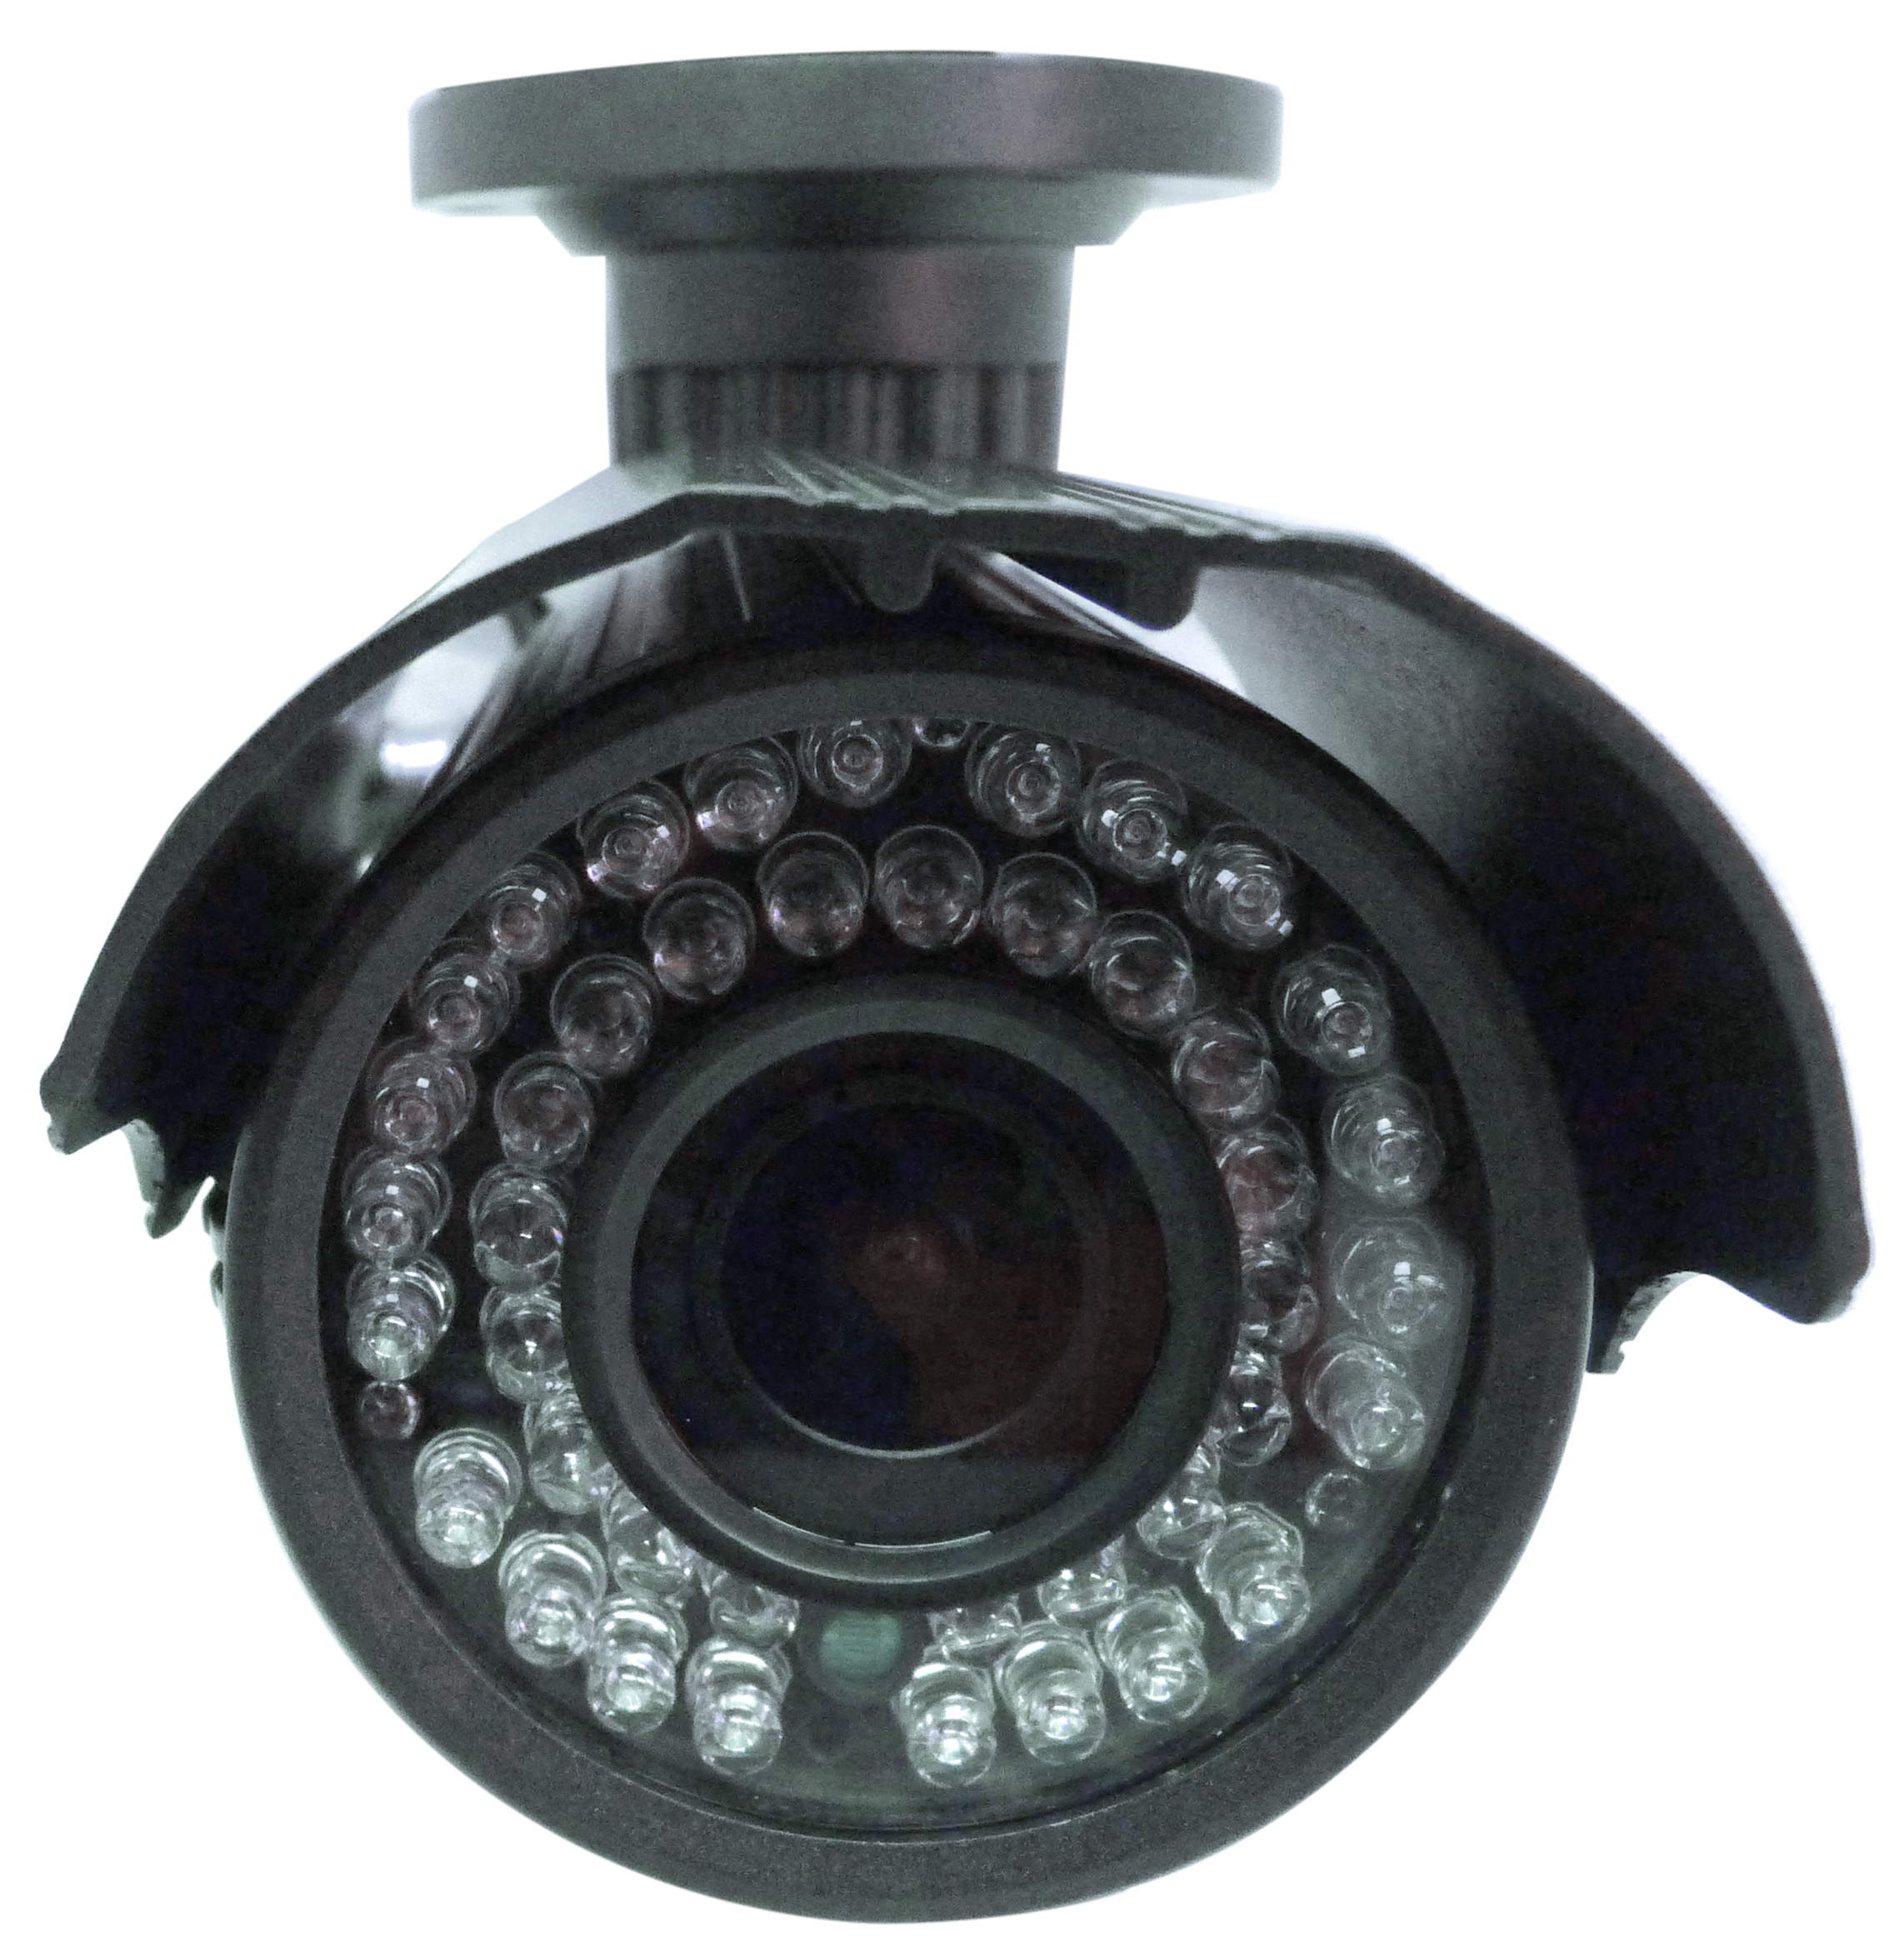 DBS 116G - 700TVL CCTV Bullet Security Camera - 1/3'' Sony Super HAD CCD II